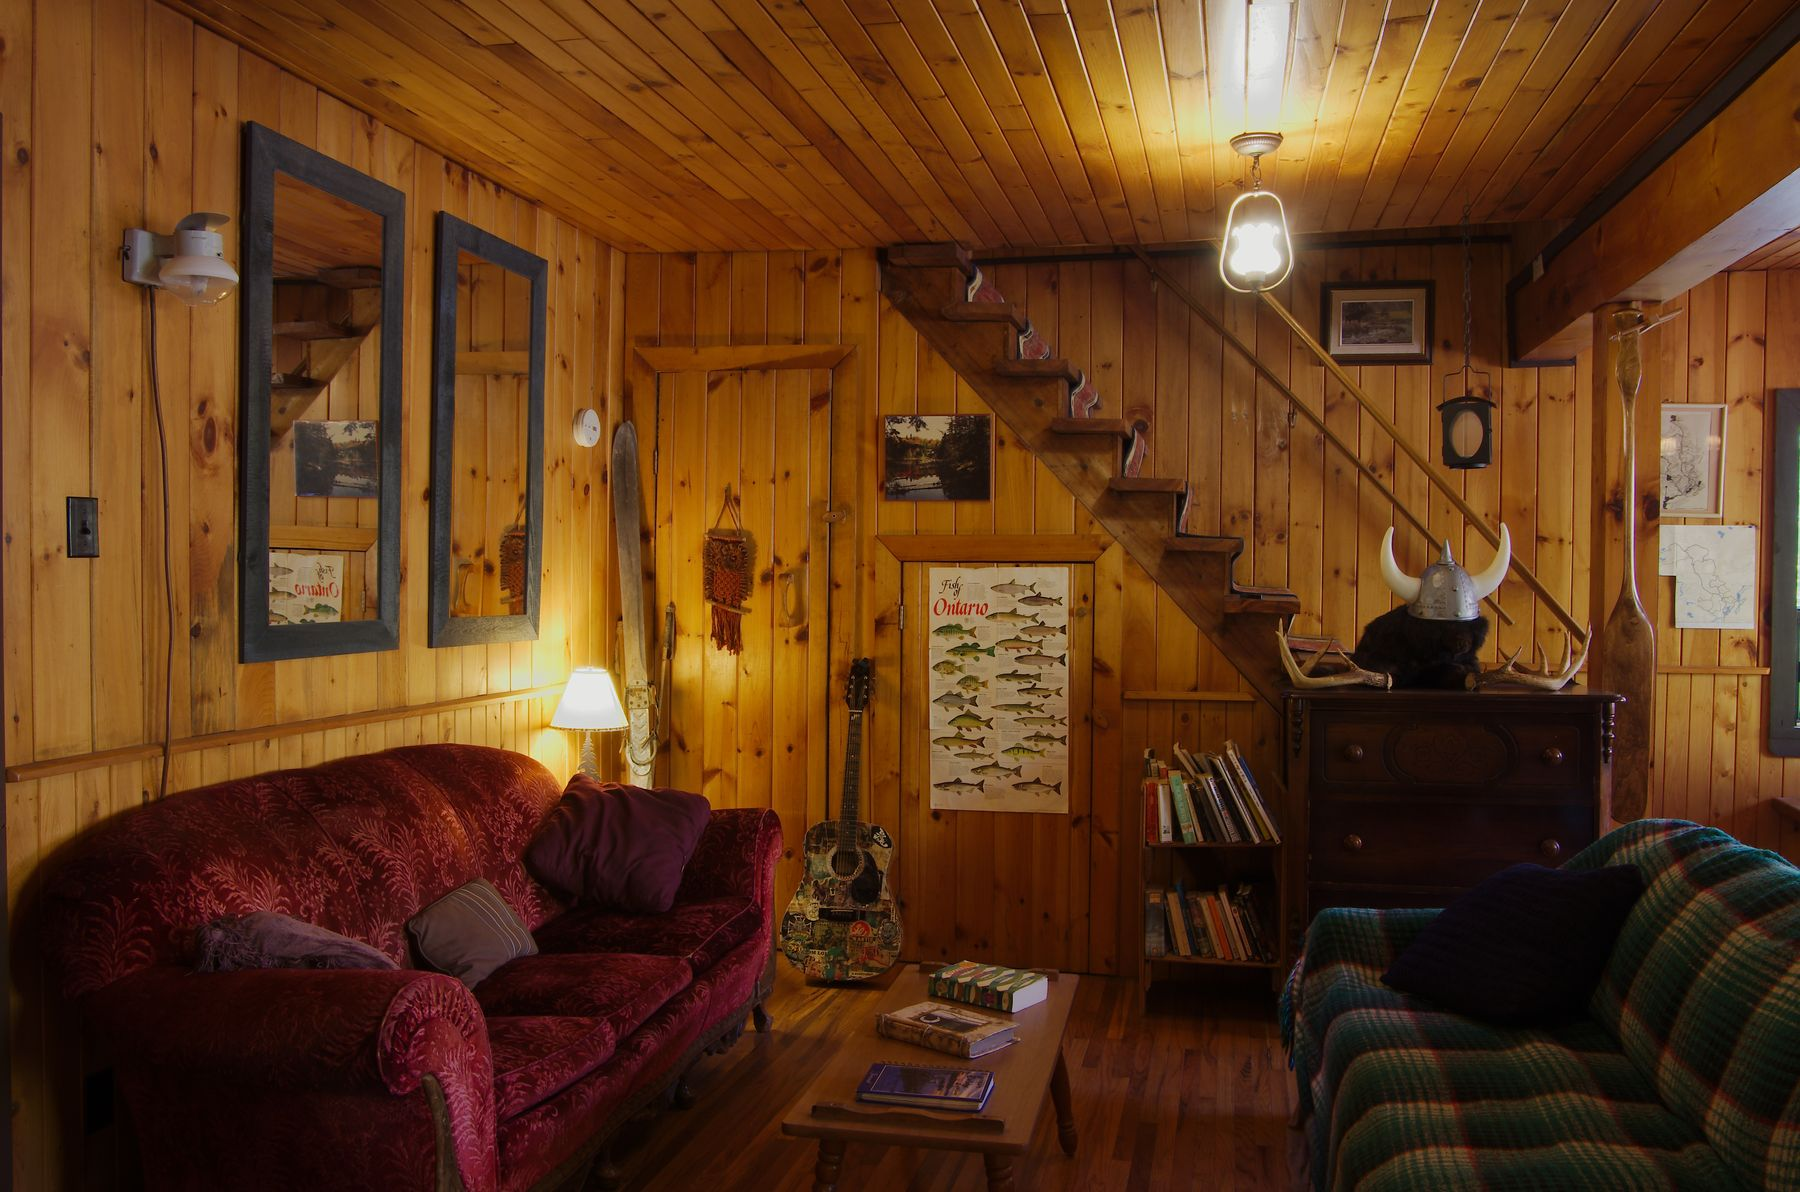 interior of algonquin eco lodge. a cozy living room with red couch, stairs, posters on wall